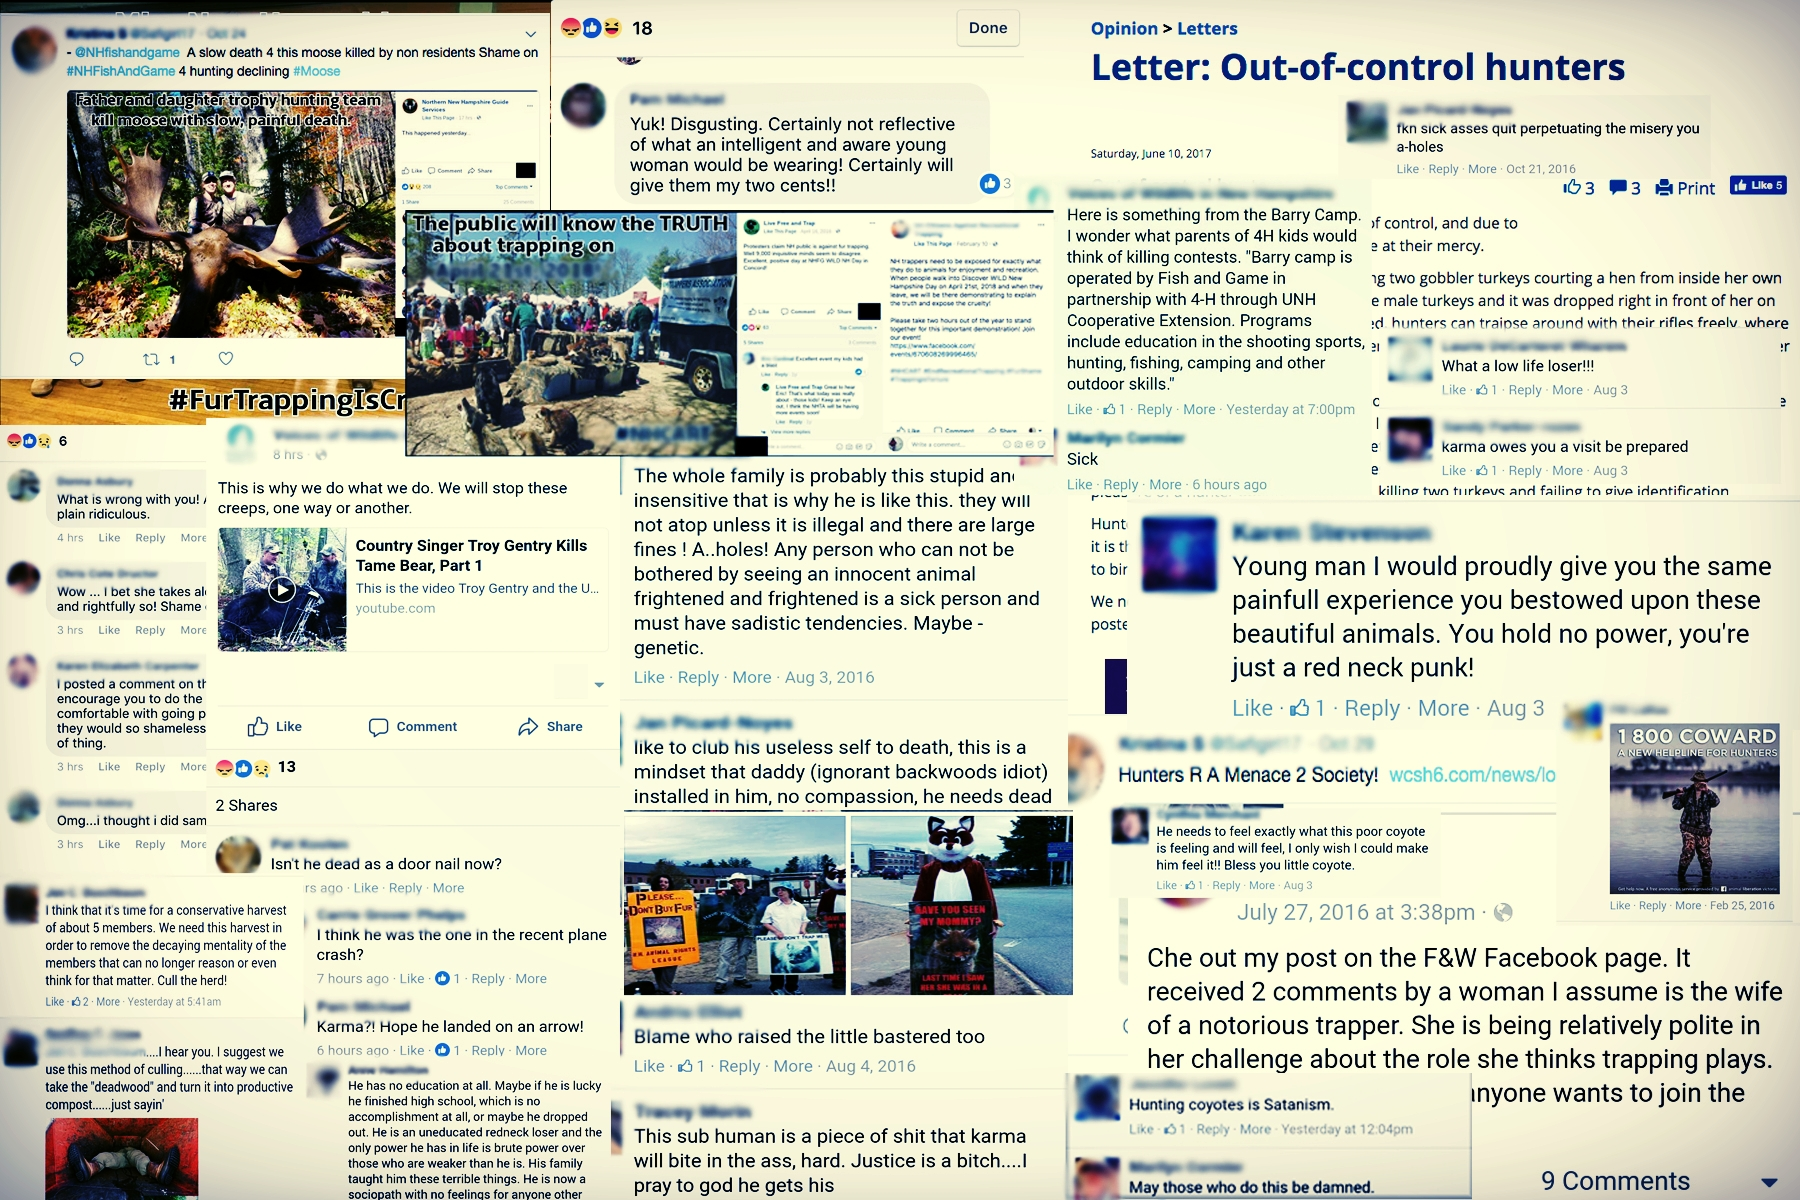 """A very small cross-section of the procurement of screen-shots from local NH and VT """"animal rights"""" members over the last few years. Not a very neighborly bunch! (Names have been censored for this public post - these people humiliate themselves, no need for us to assist further.)"""